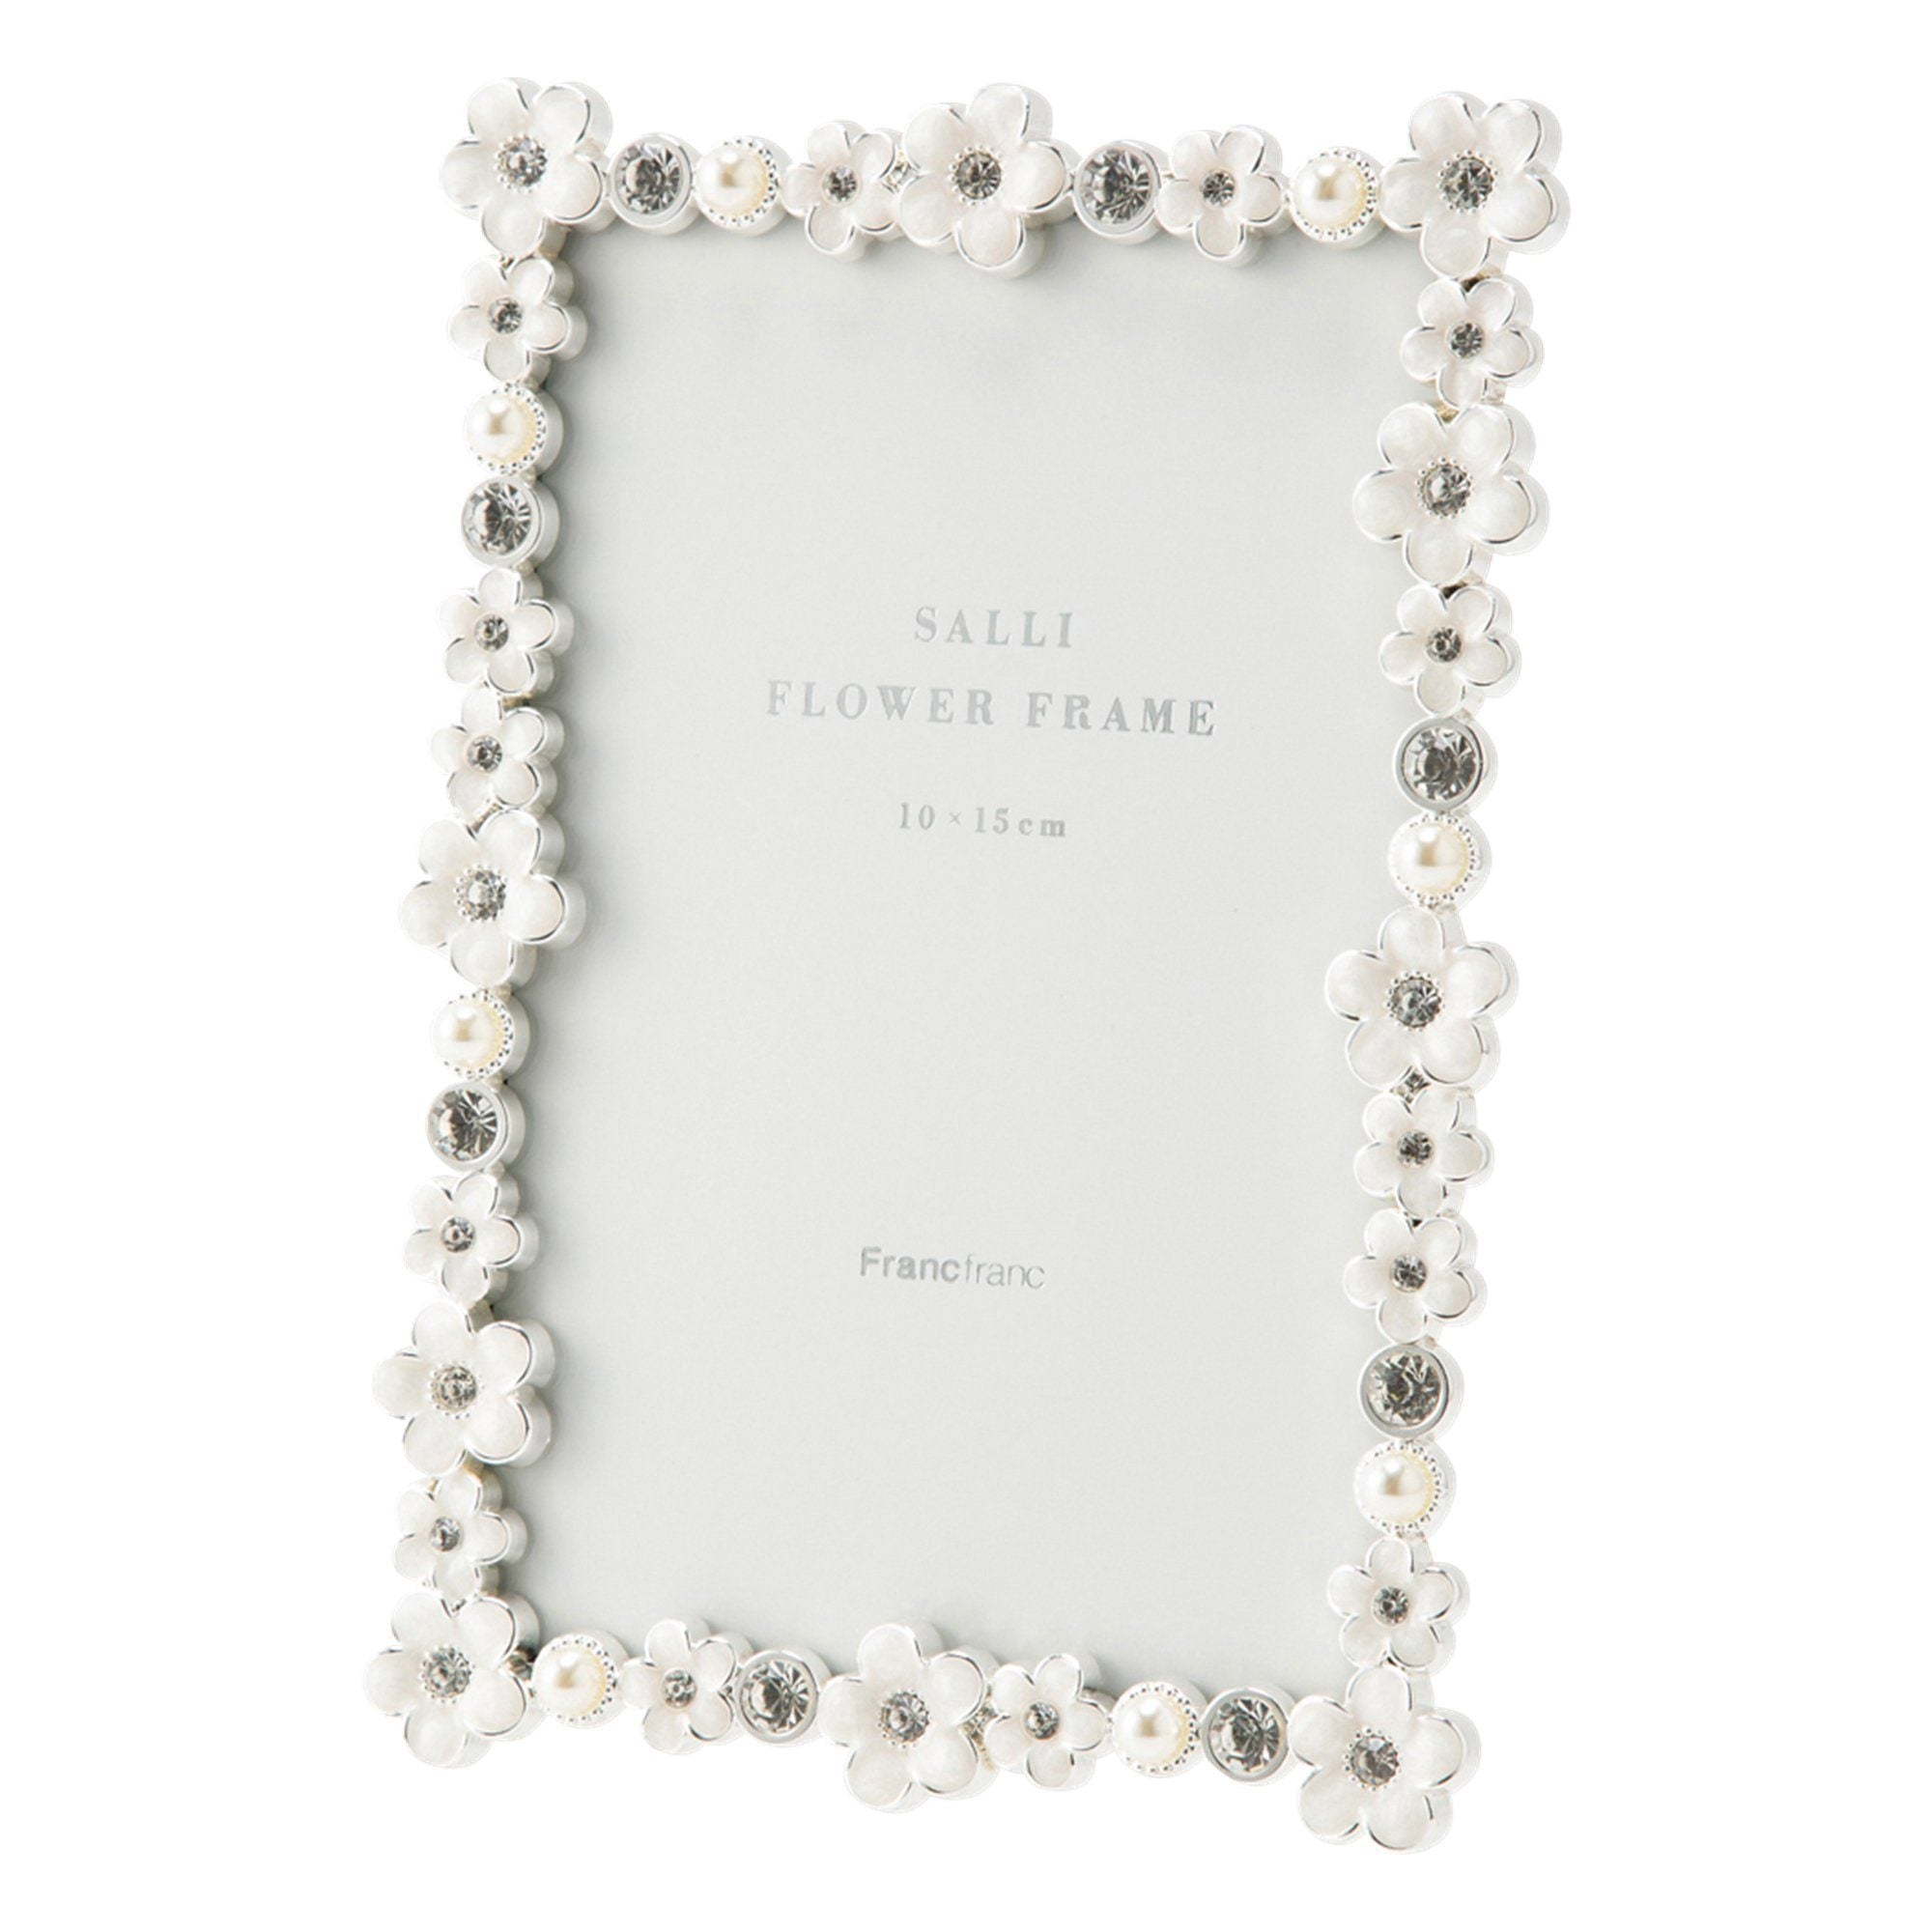 SALLI FLOWER FRAME SQUARE White - weare-francfranc